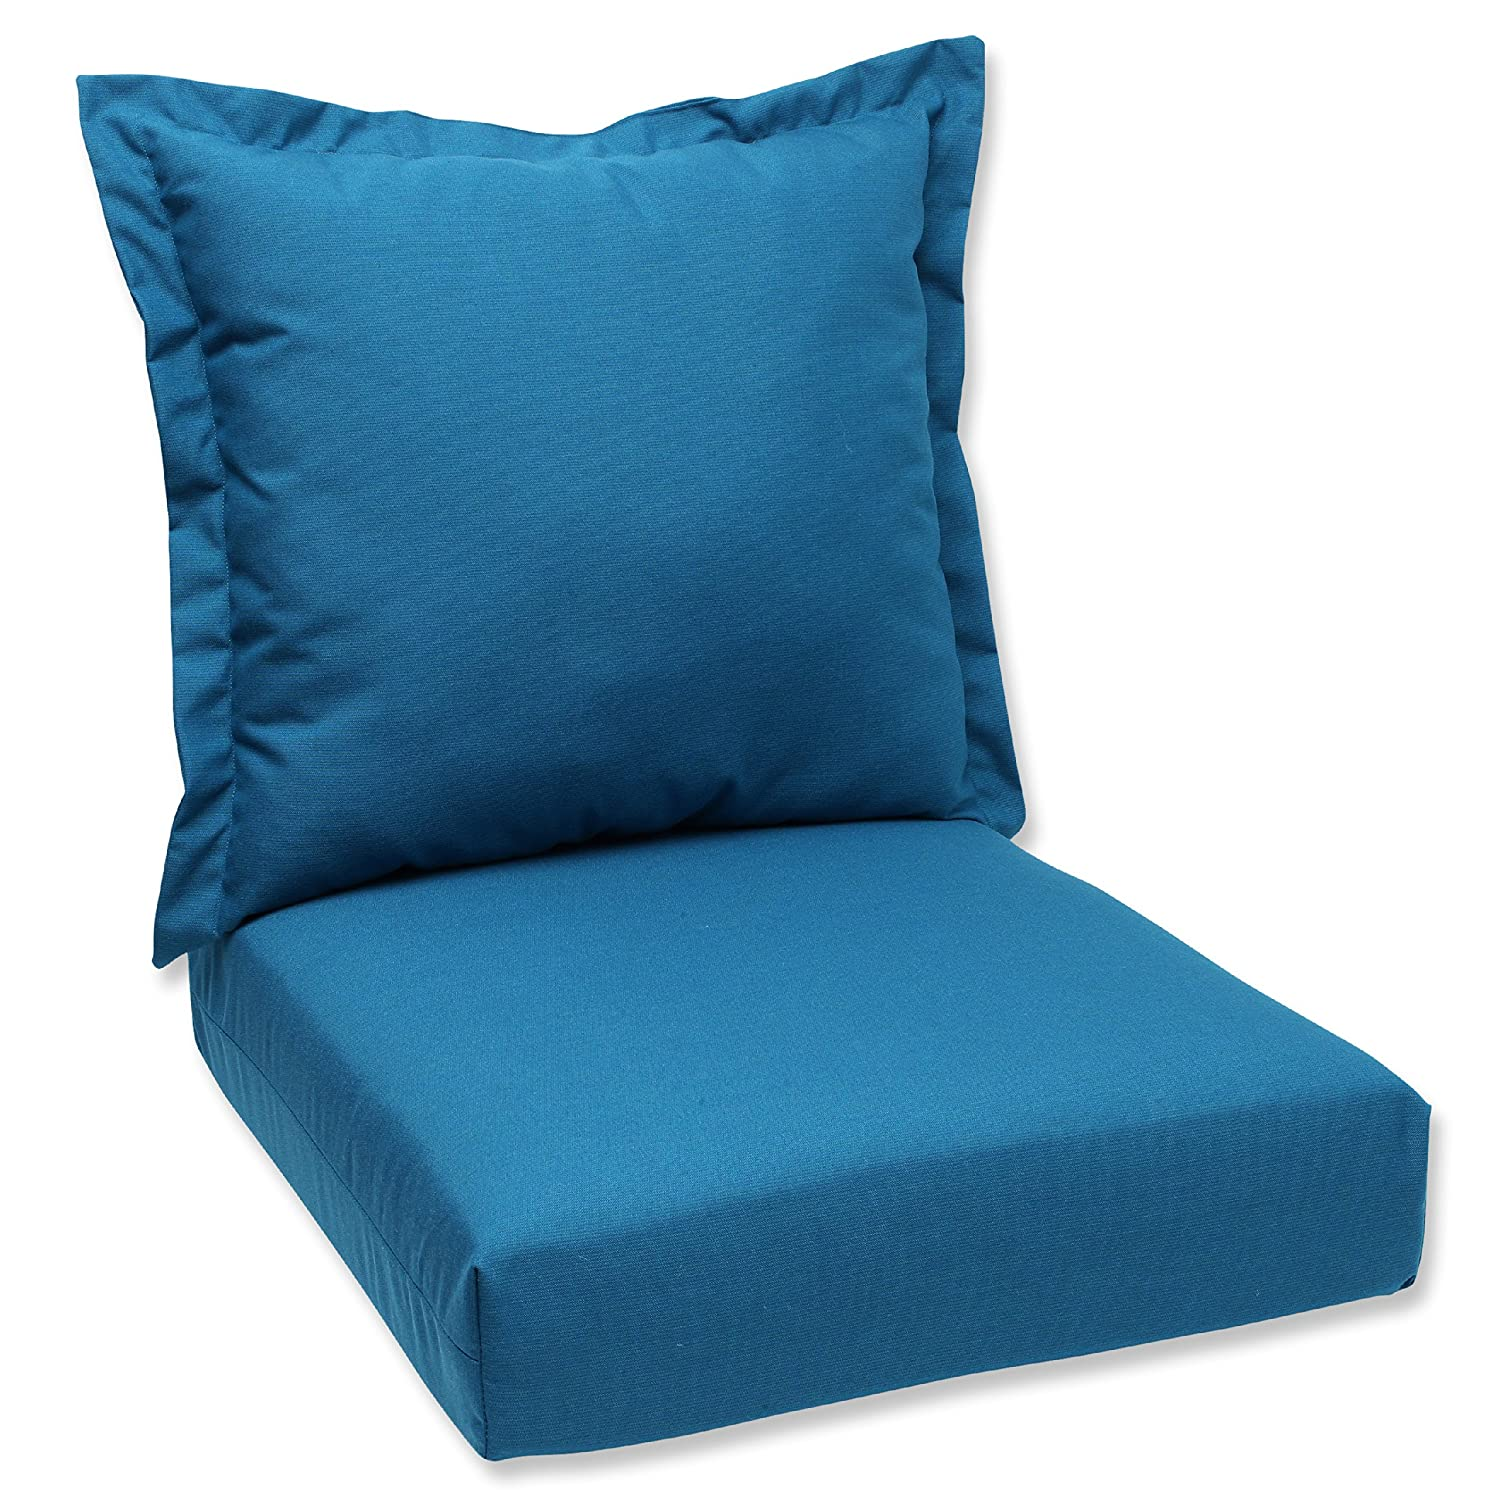 Amazon.com: Pillow Perfect Indoor/Outdoor Deep Seating Cushion And Back  Pillow With Sunbrella Spectrum Peacock Fabric, 44 In. L X 24 In. W X 6 In.